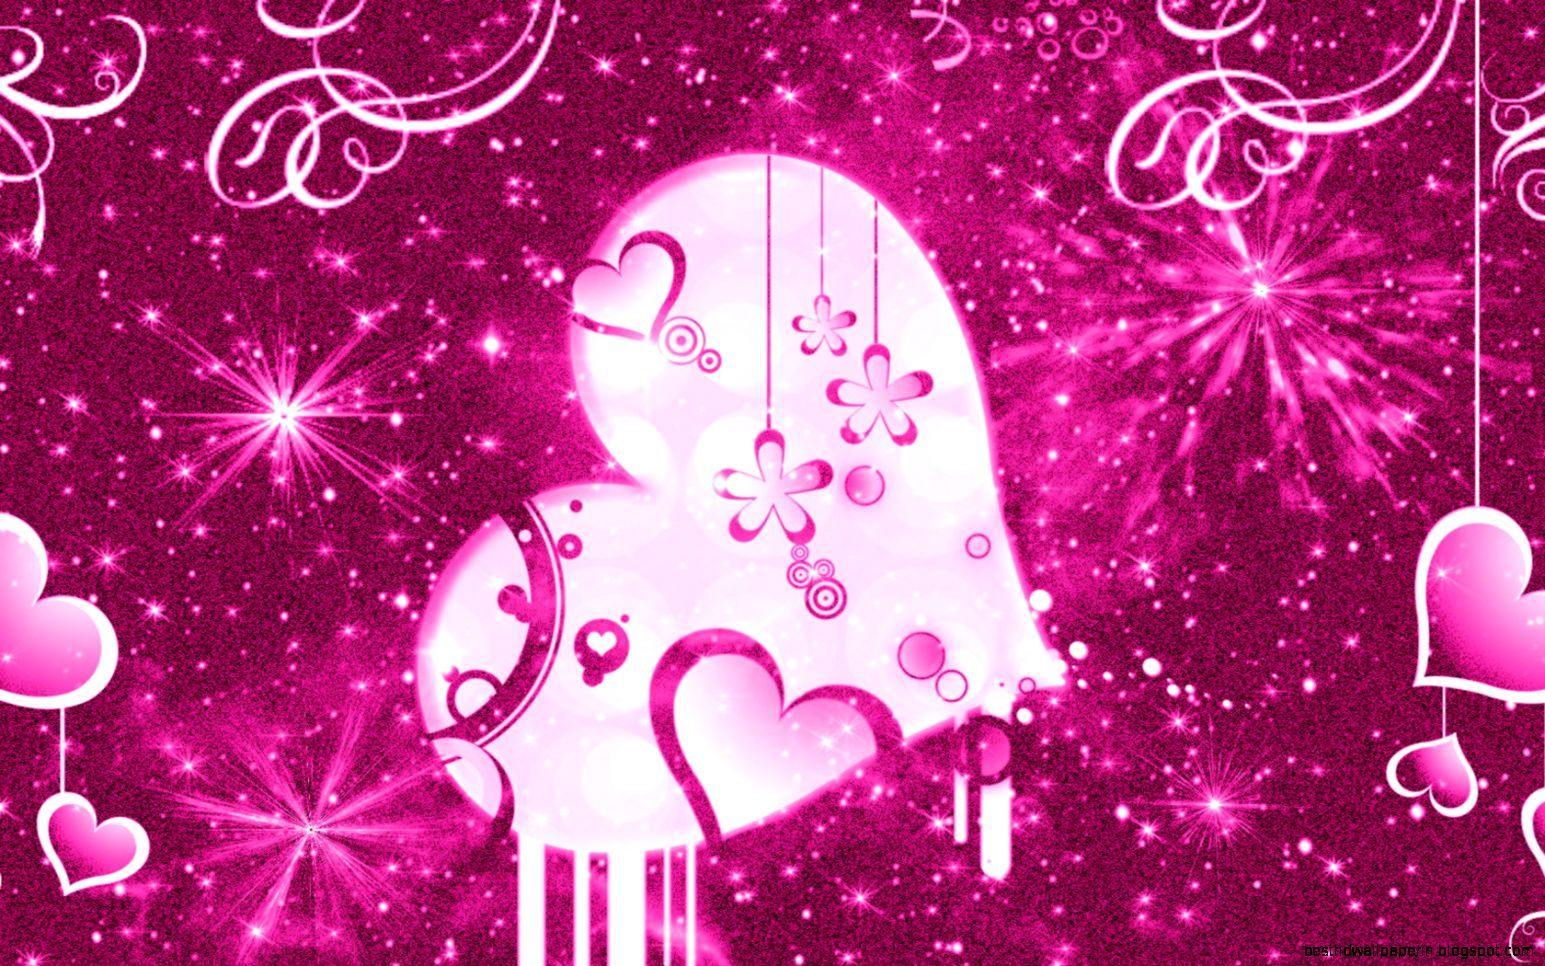 Great Wallpaper Mobile Girly - 3f216a68e5609bbb4498084dc163959c  Pictures_74415.jpg